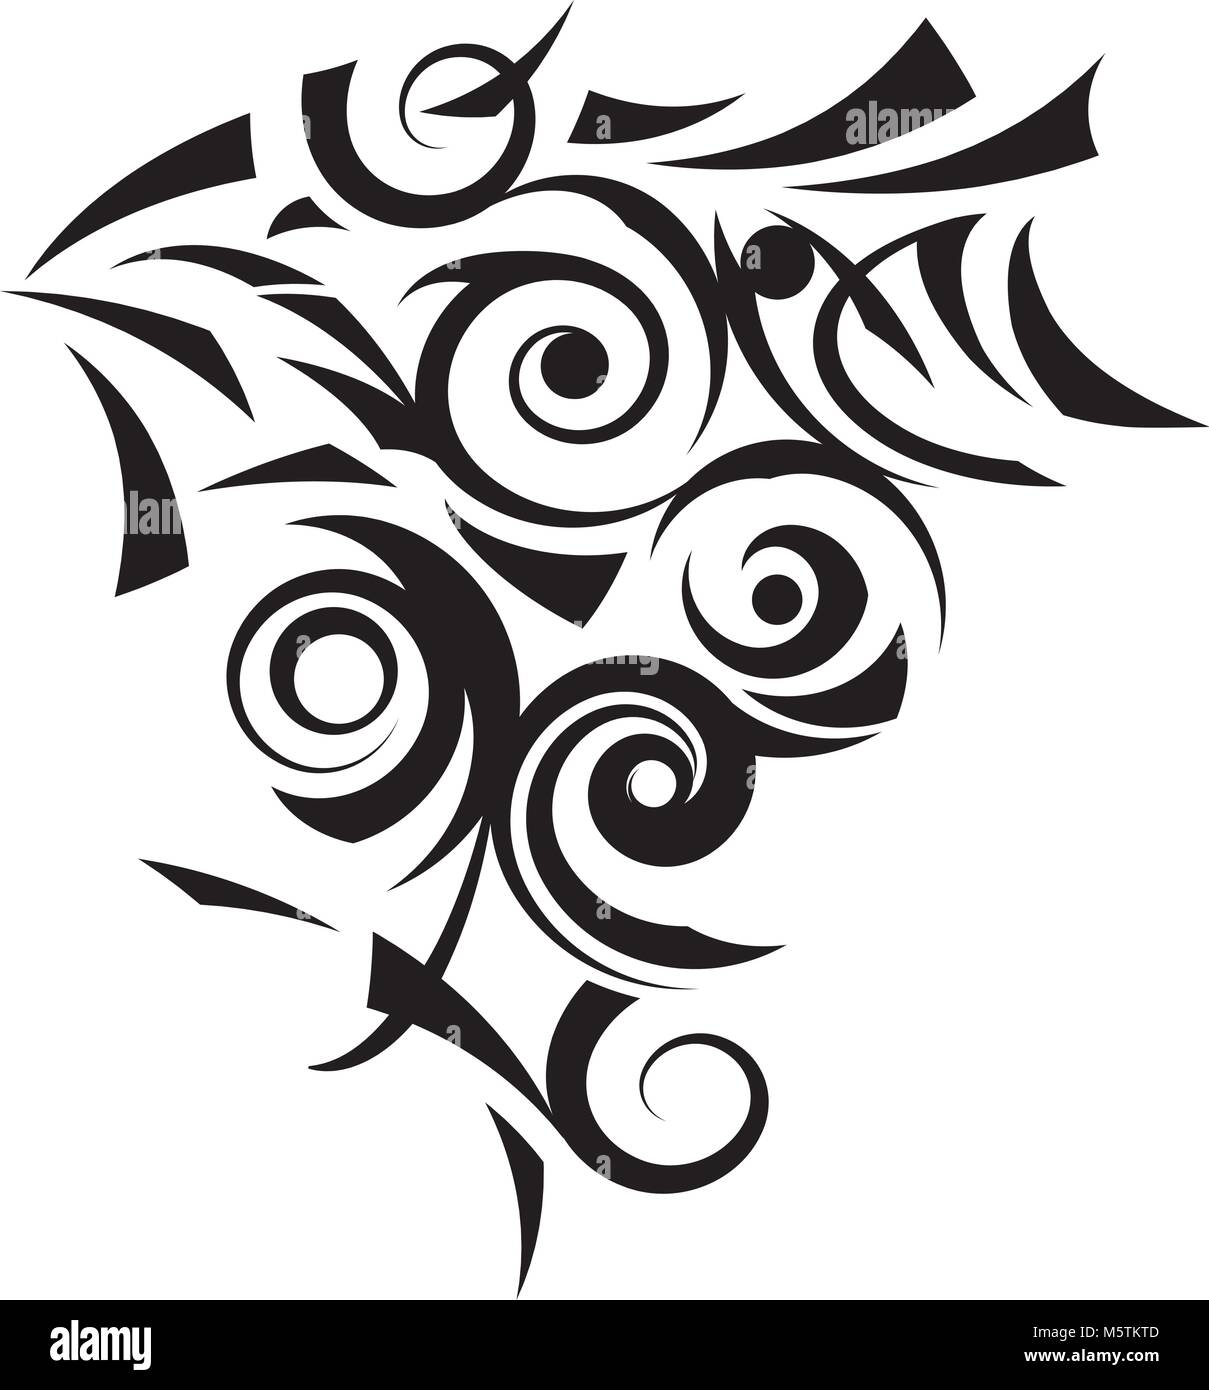 Aztec tattoo style in aggressive nature. - Stock Vector